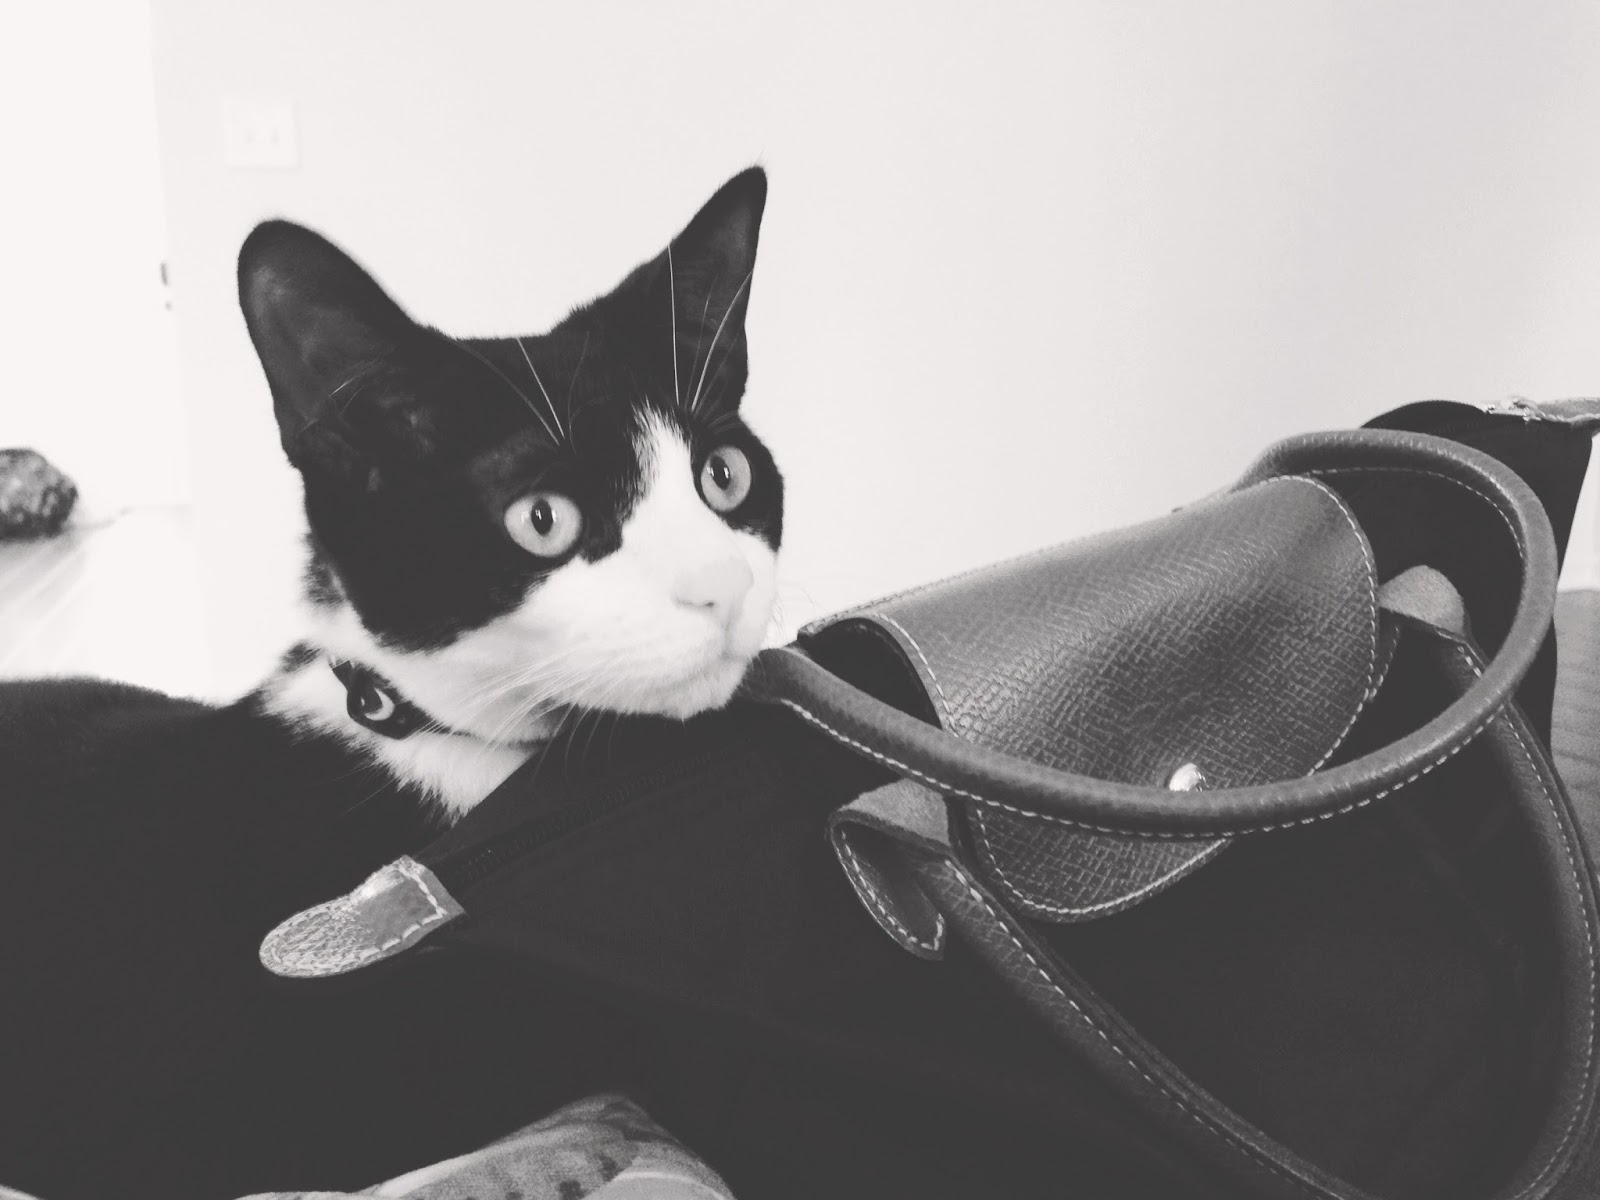 wedge (cat) posing by longchamp mini 'le pliage' handbag